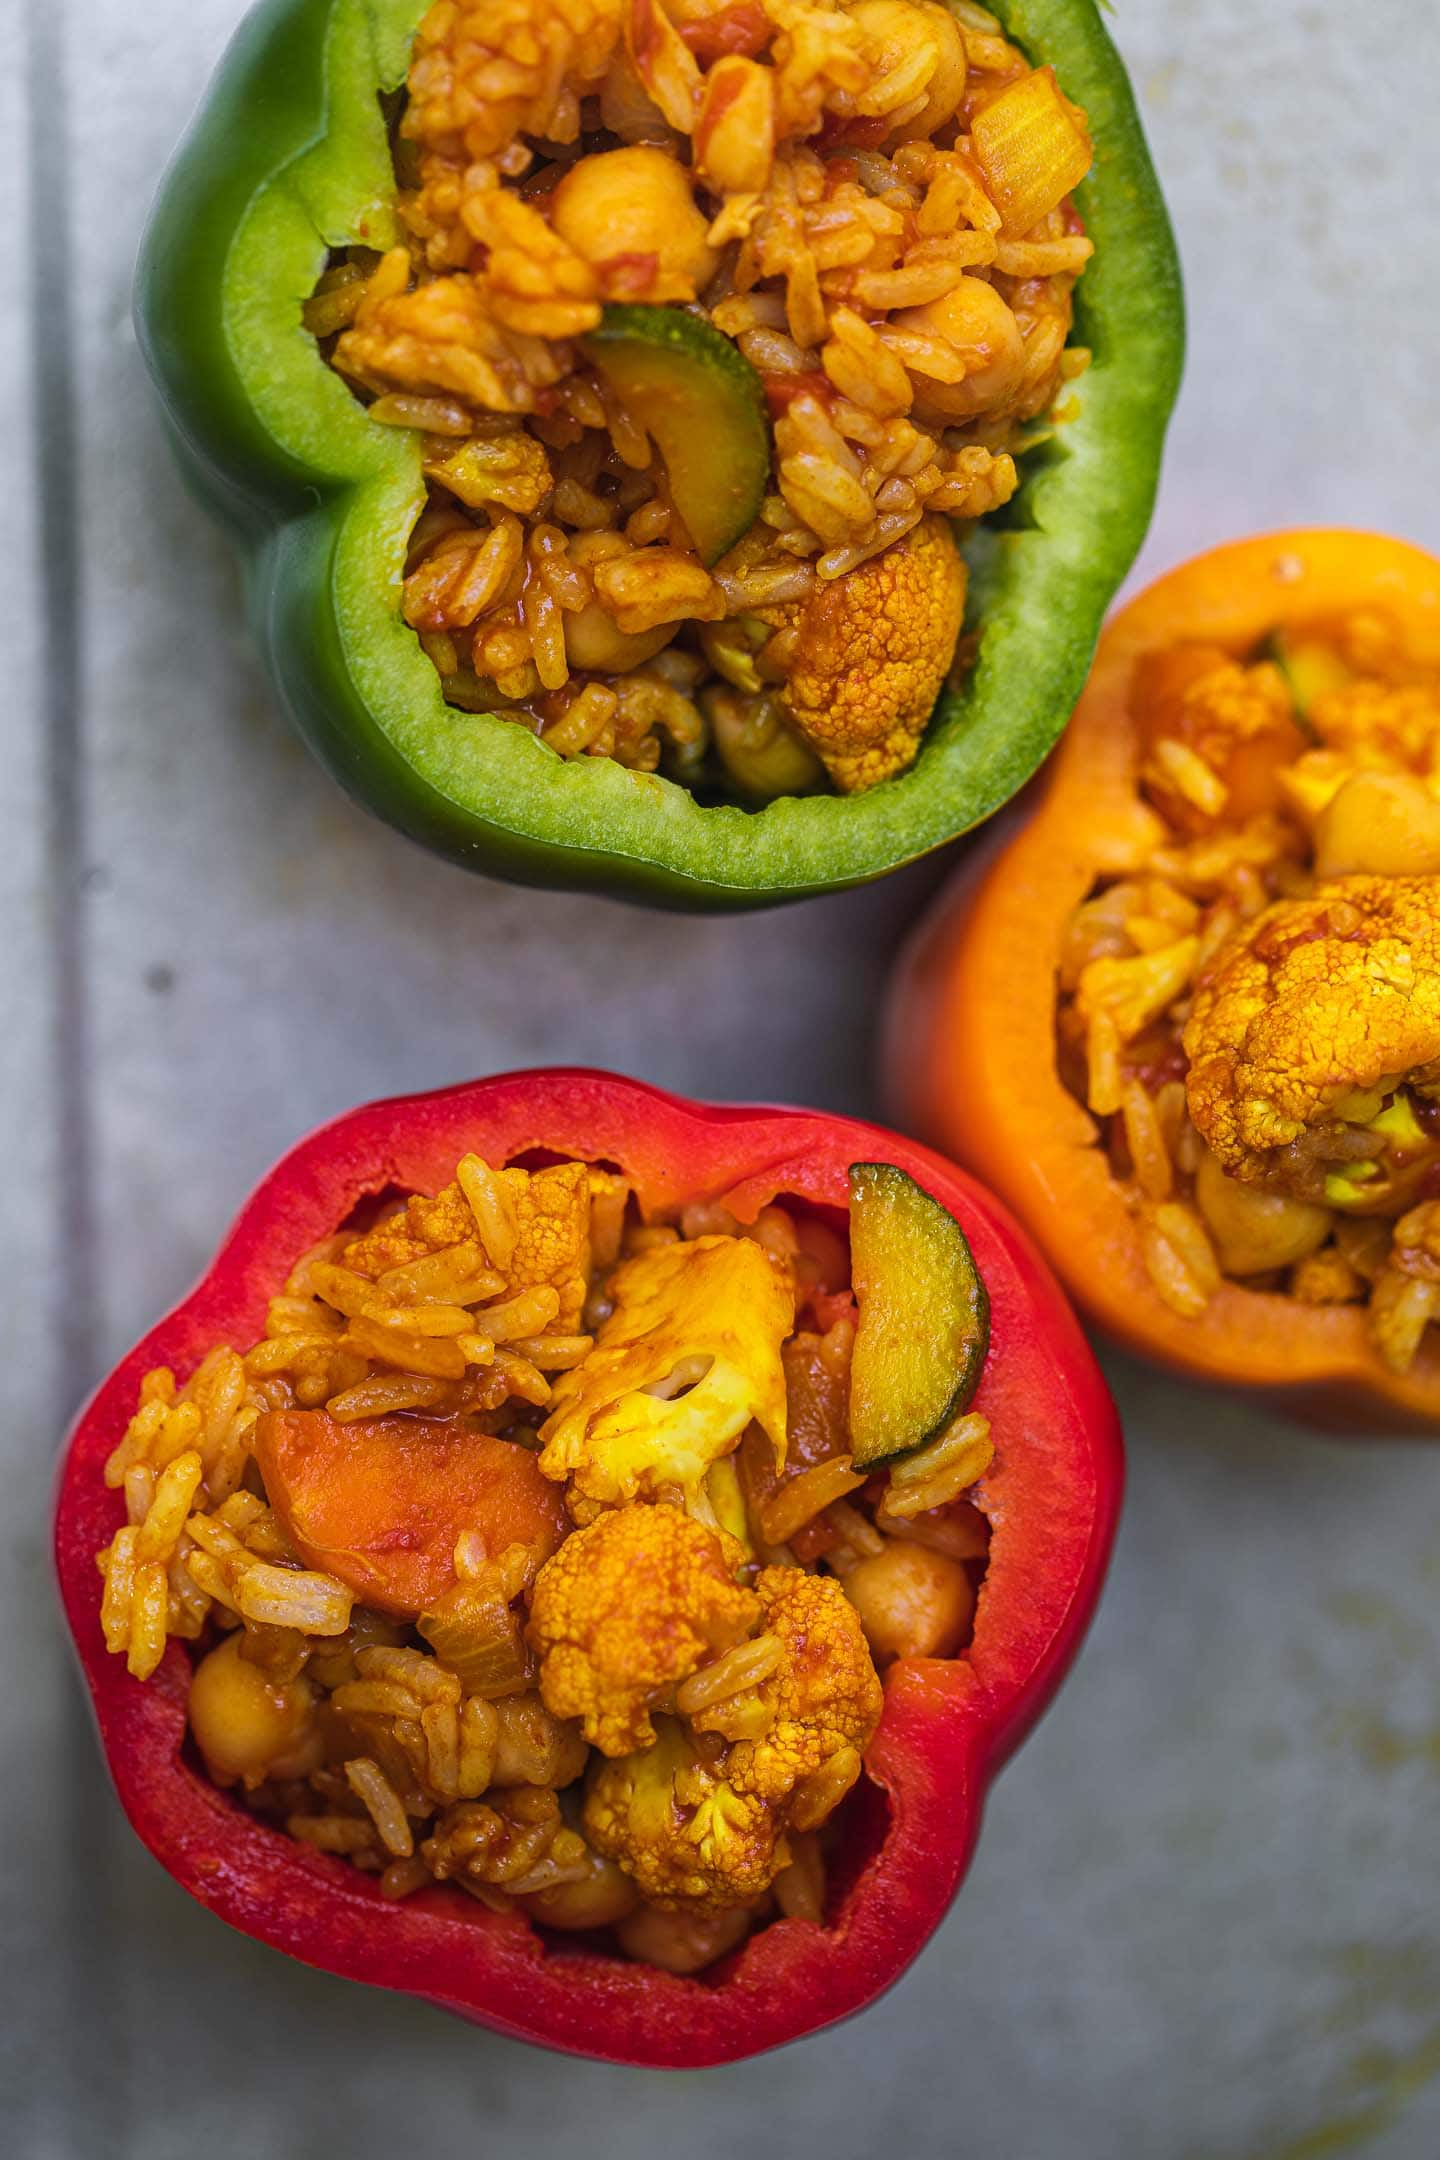 Stuffed peppers with rice chickpeas and cauliflower before baking